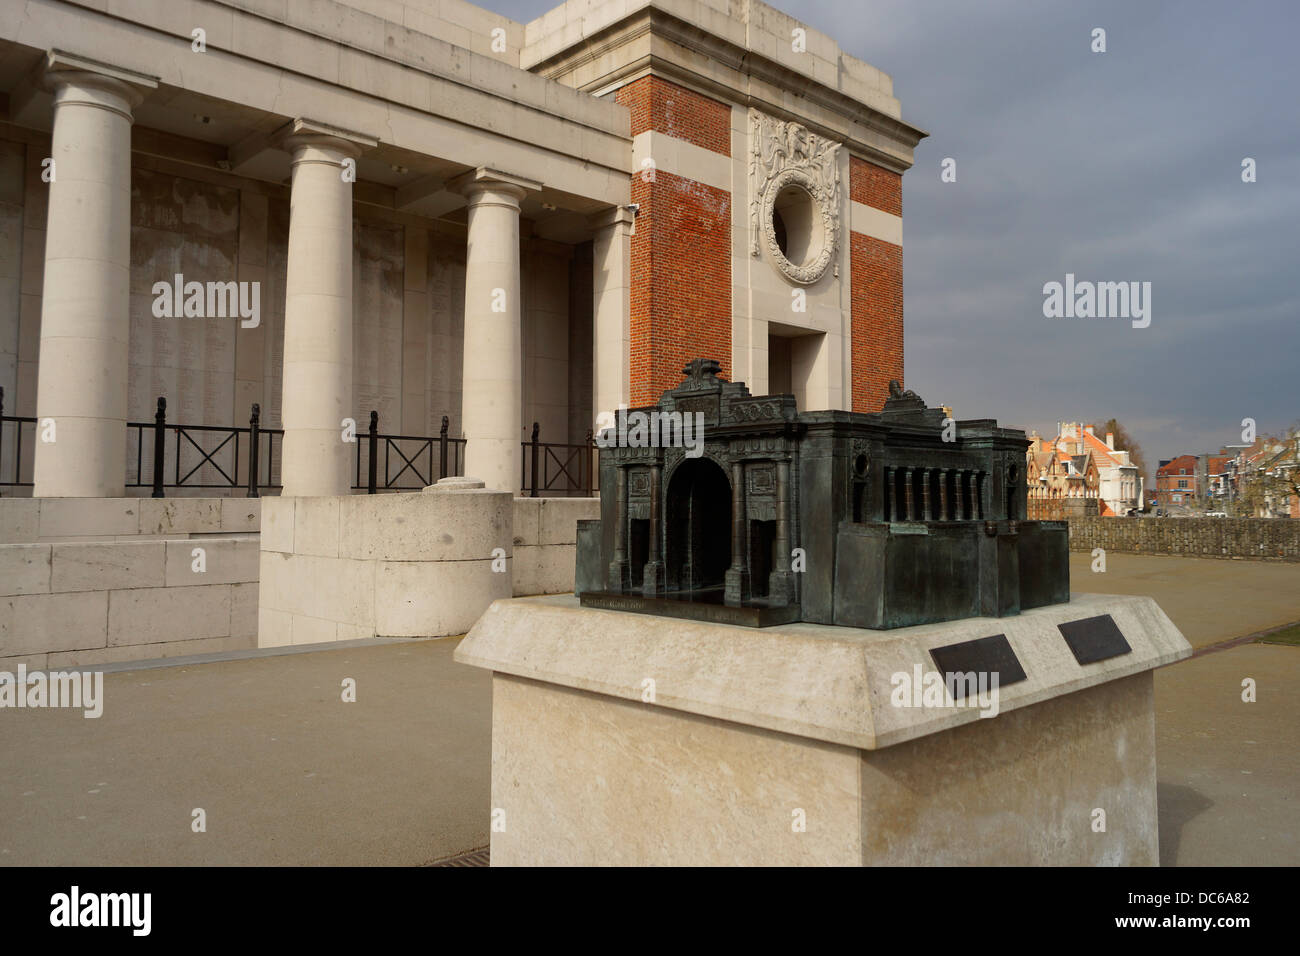 View of the Menin Gate, Ieper / Ypres in Belgium.  Showing also a model of the structure. - Stock Image